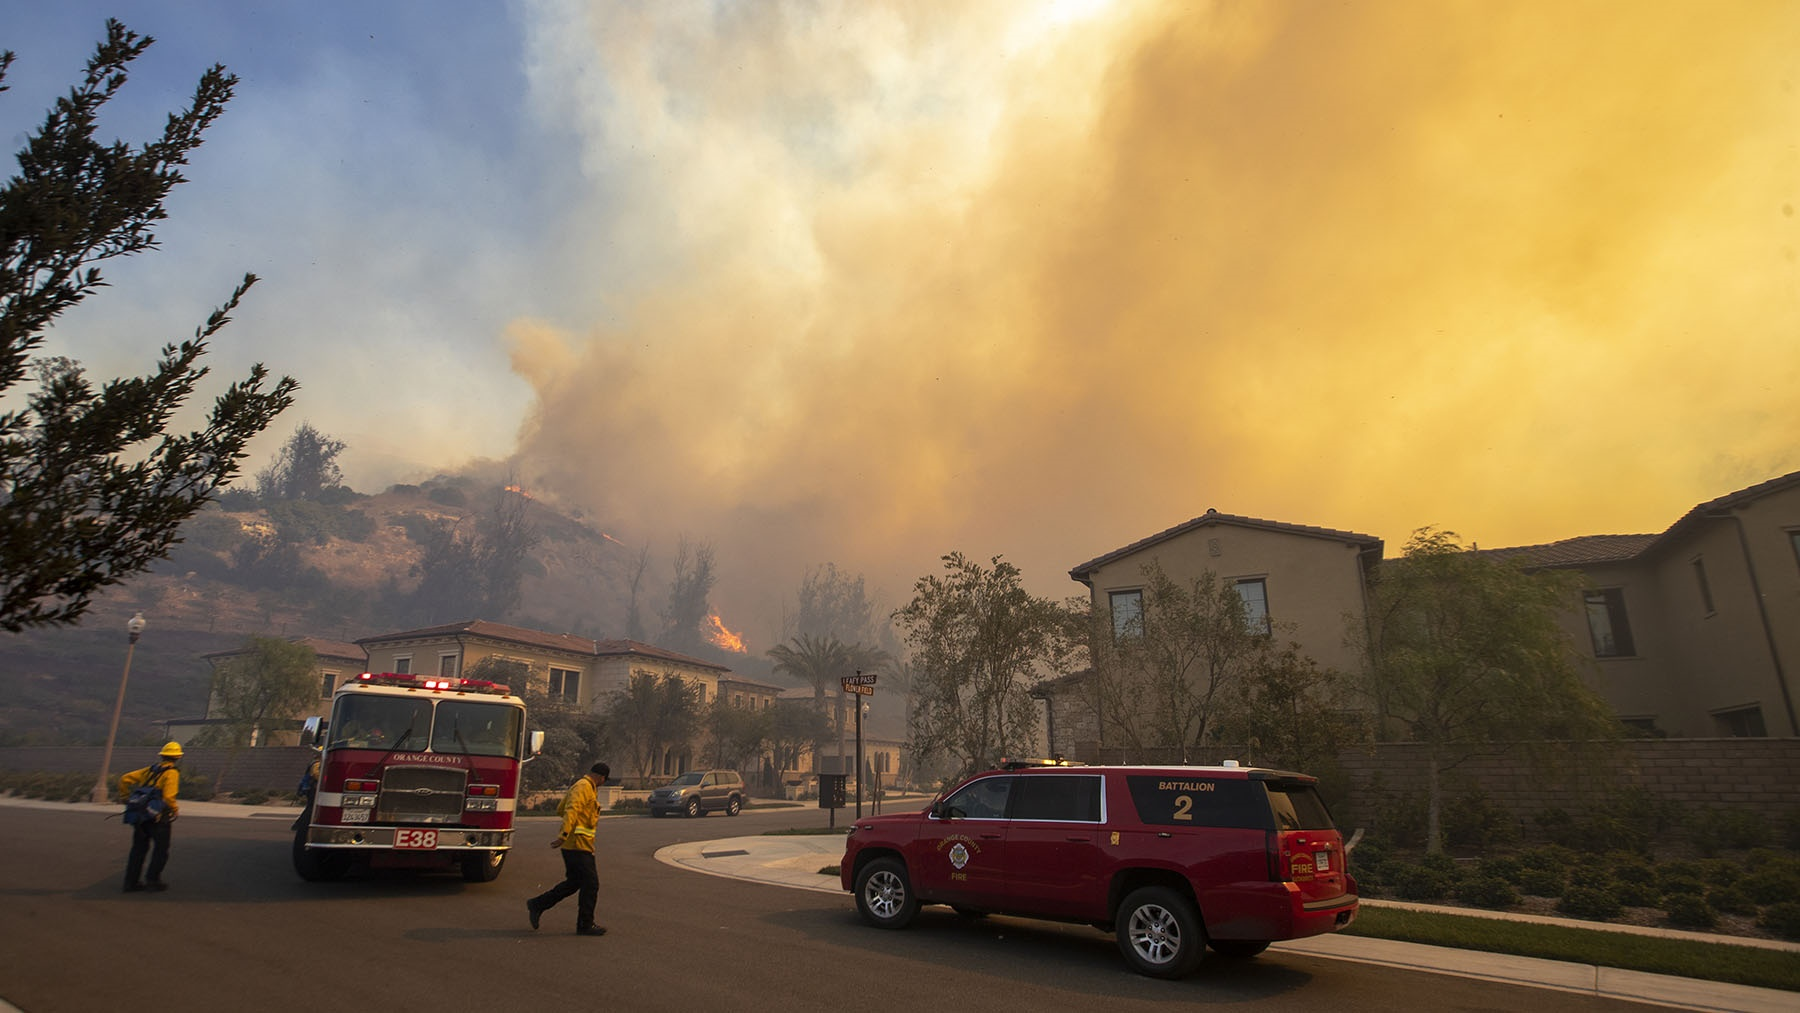 Orange County Fire Authority firefighters defend homes as the Silverado Fire approaches in an Orchard Hills neighborhood on October 26, 2020 in Irvine, California. (Photo by Allen J. Schaben/Los Angeles Times via Getty Images)